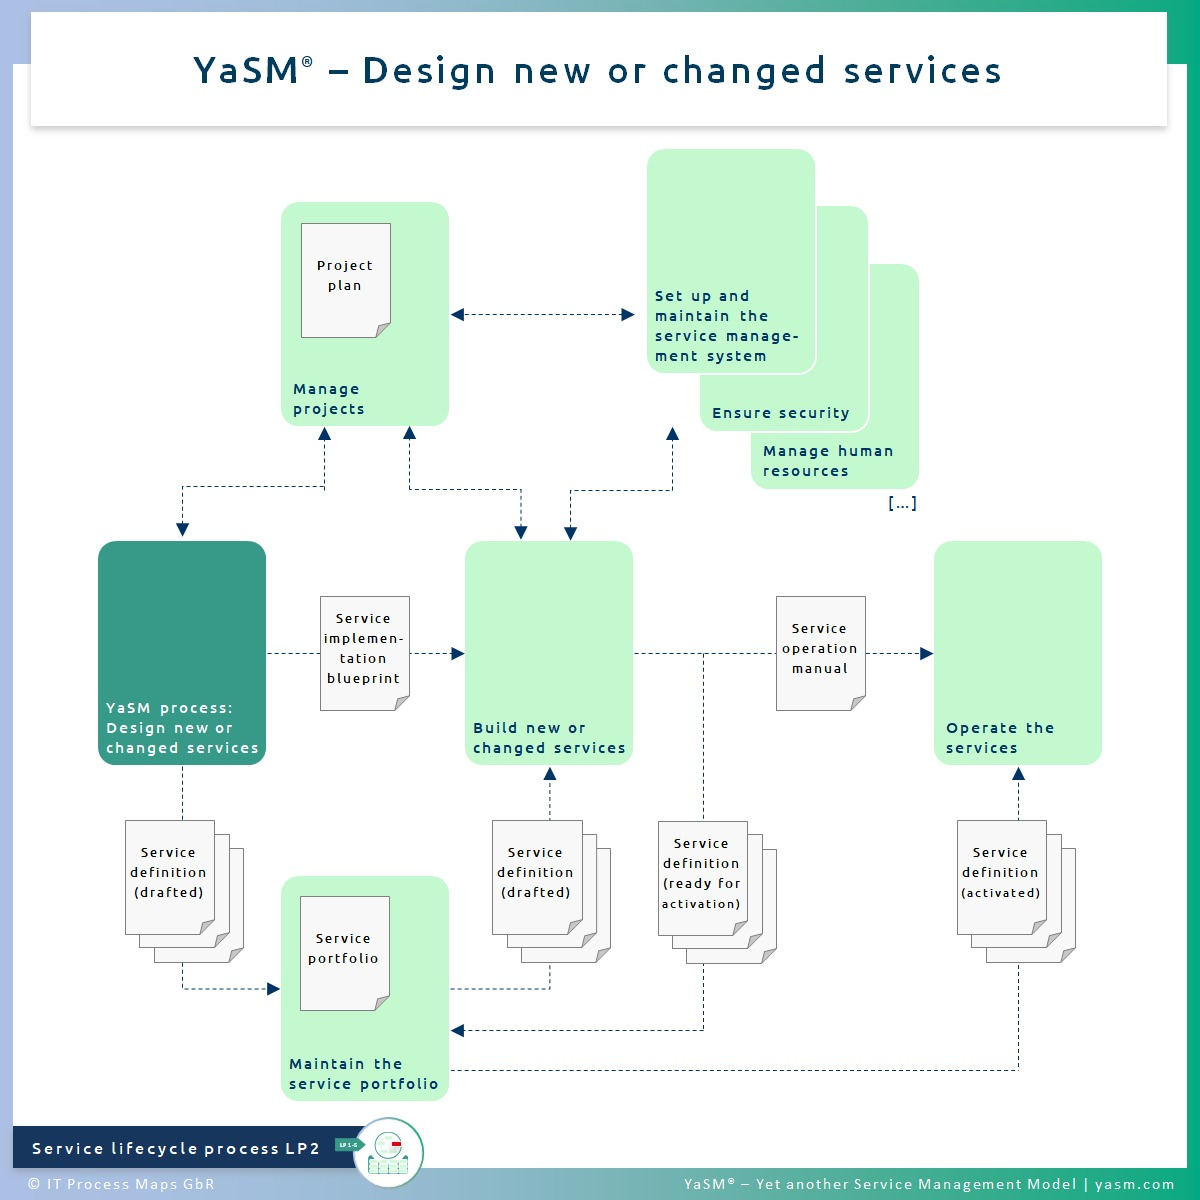 Fig. 1: Design new or changed services. - YaSM service design process LP2.